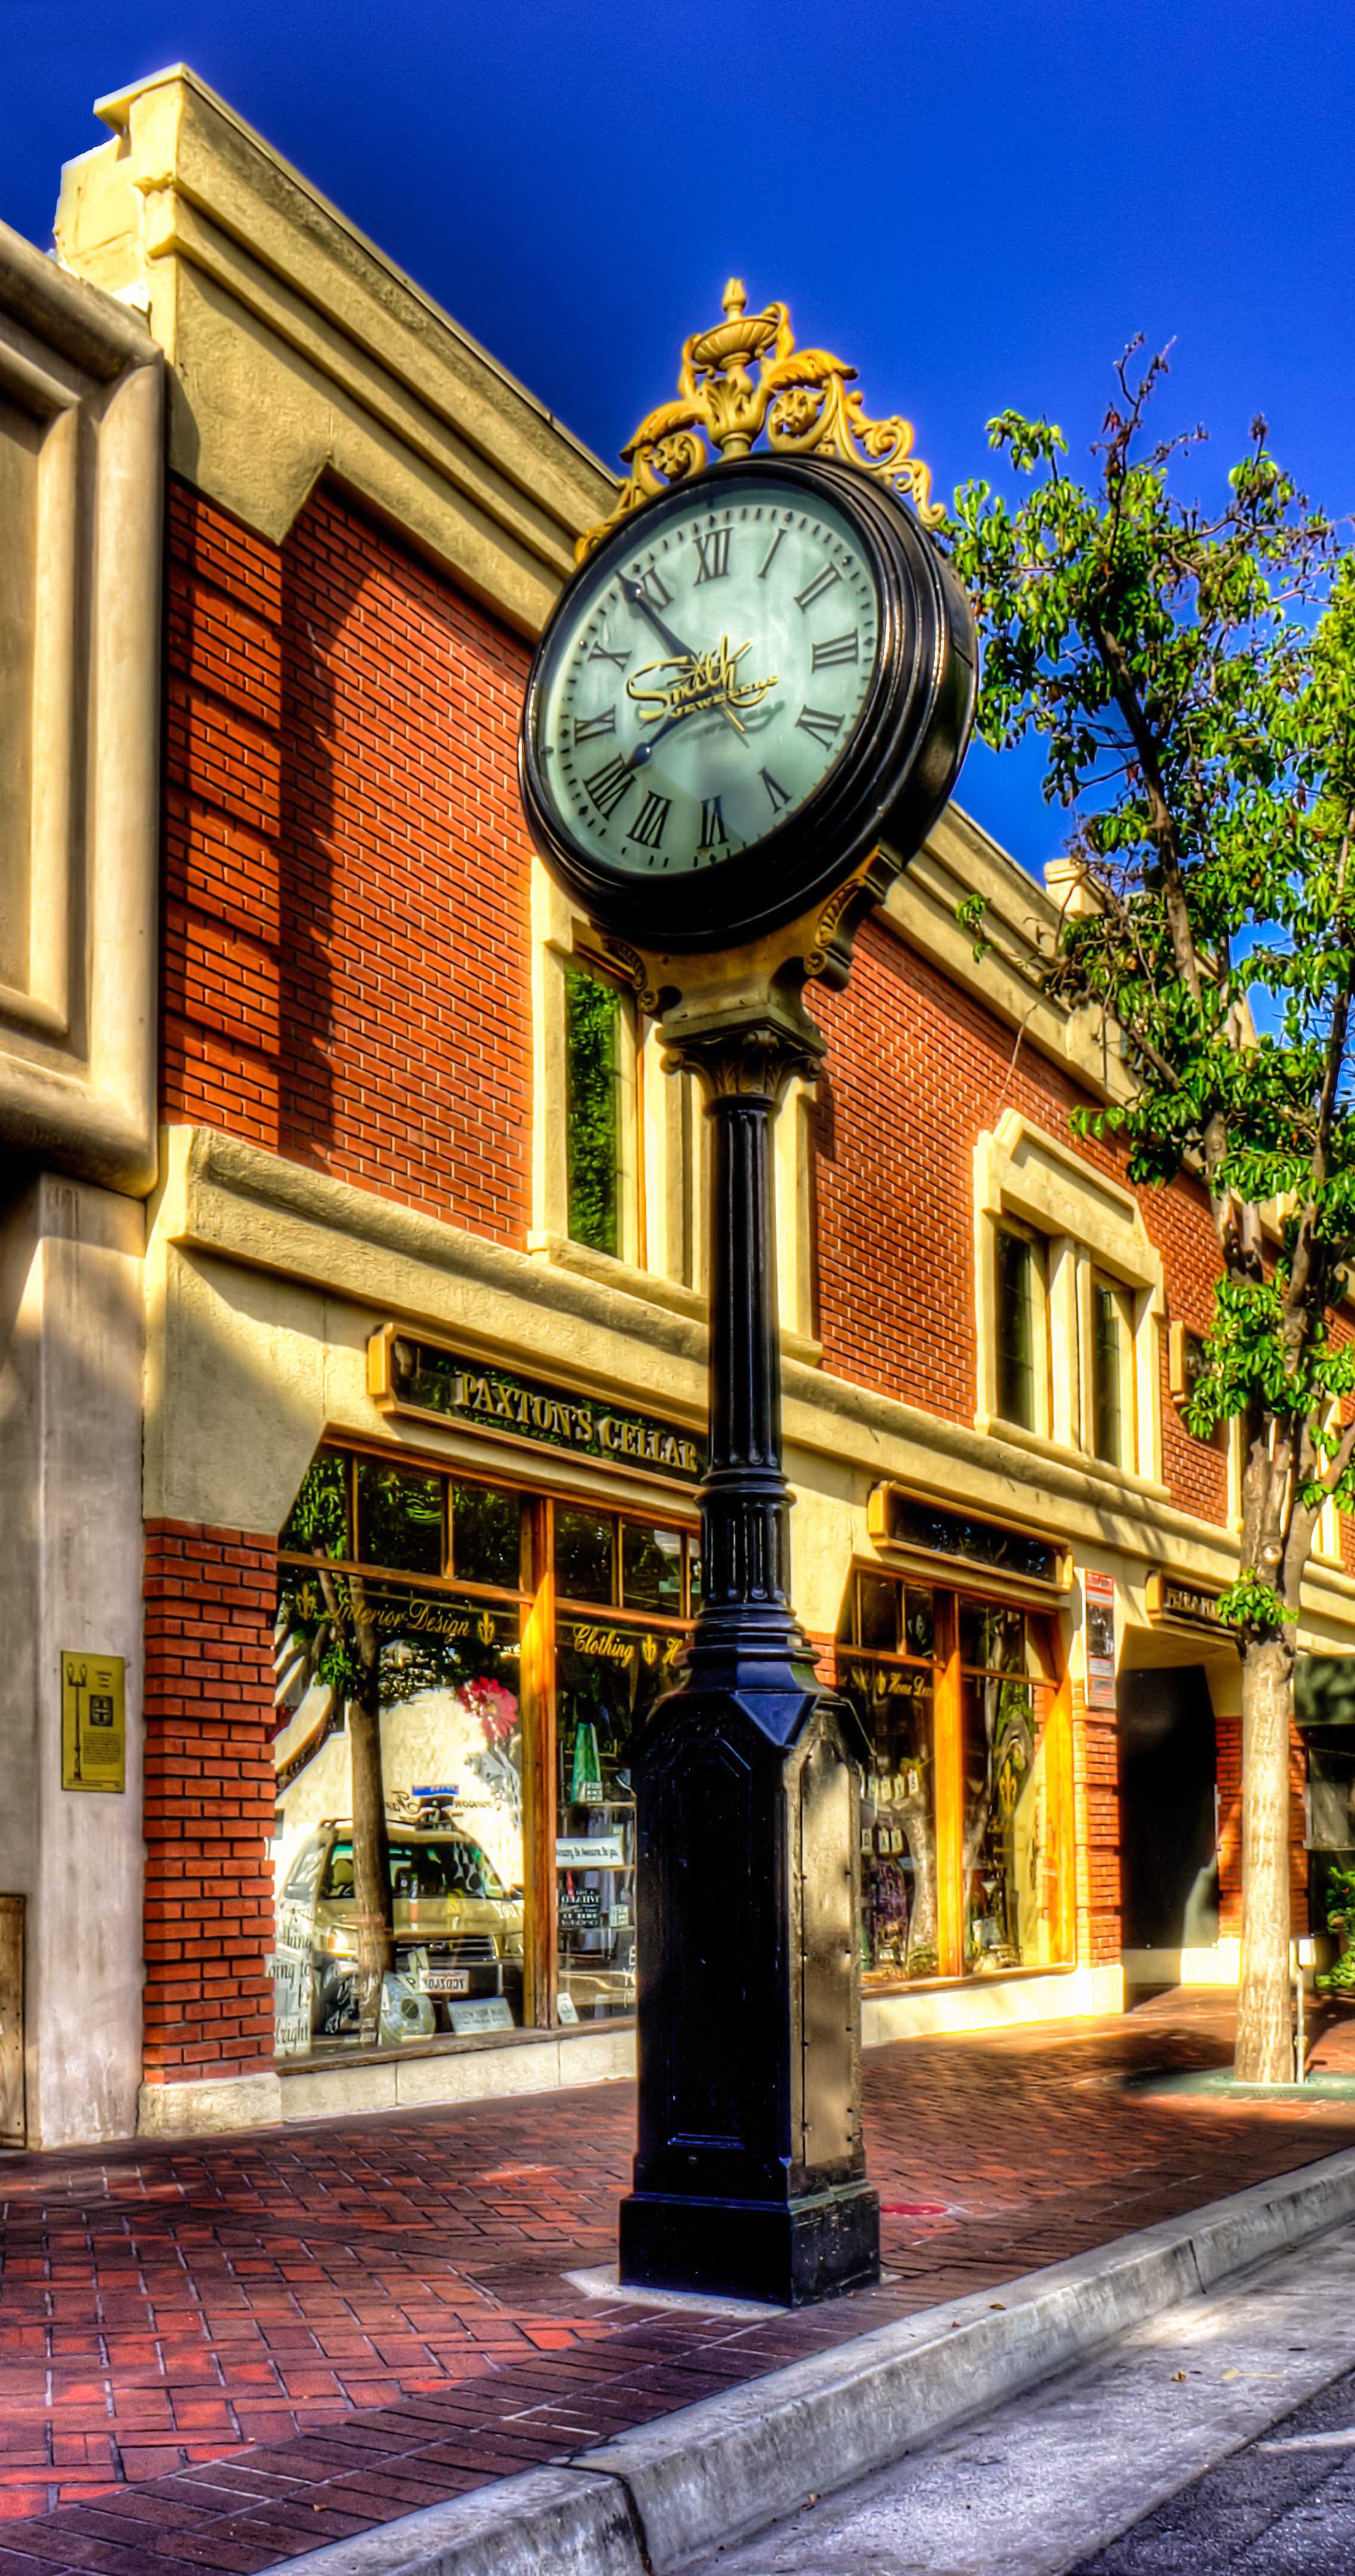 smith jeweler clock.jpg